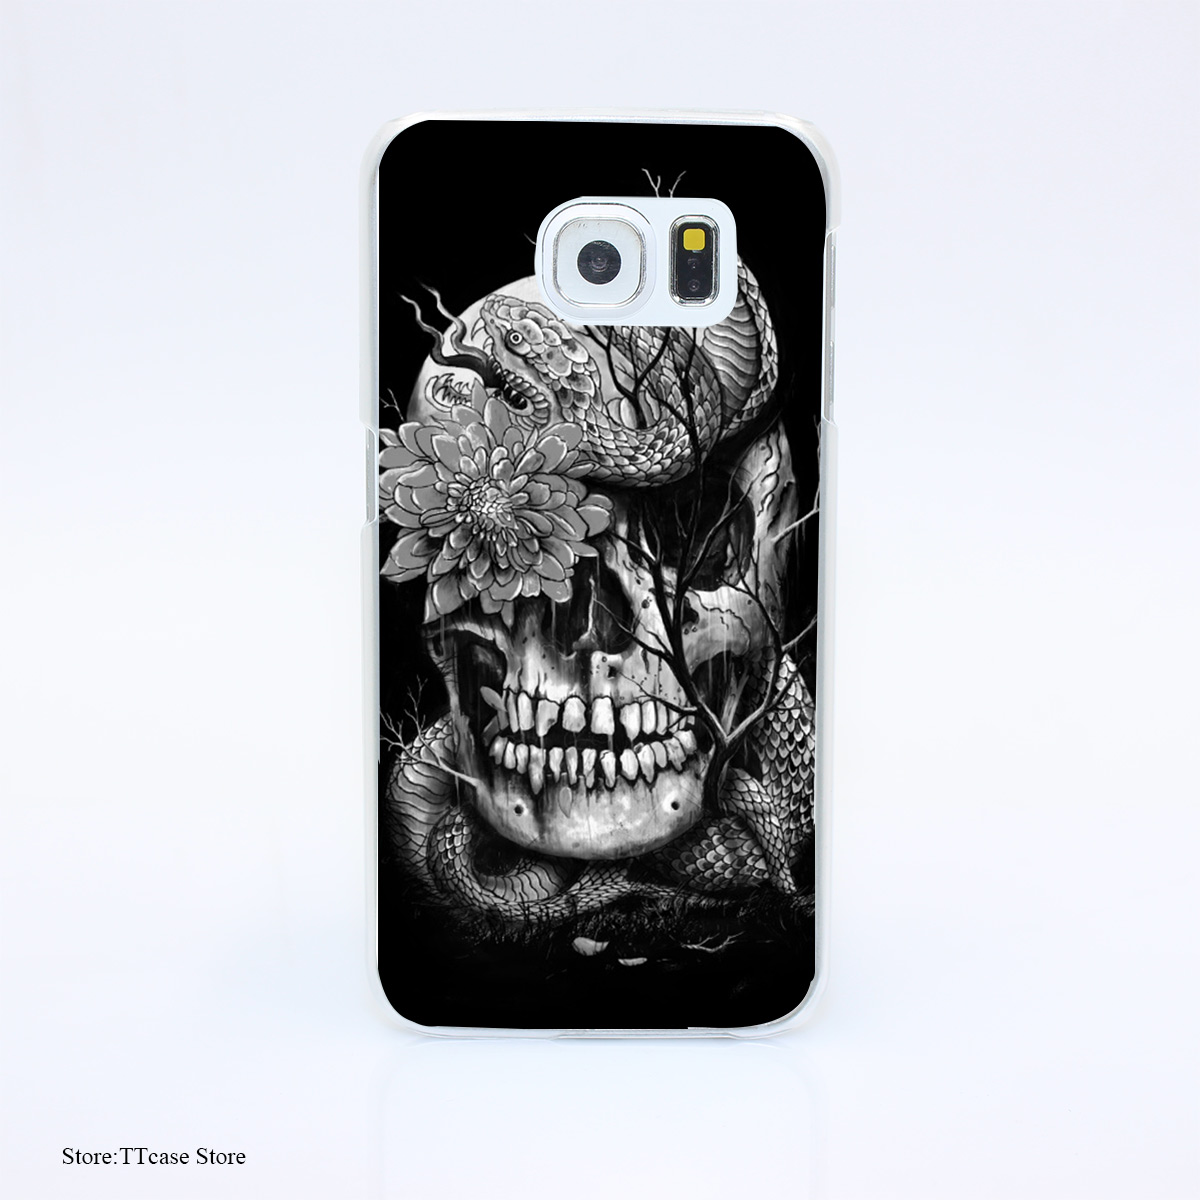 3047G Snake And Skull 6sr Print Hard Transparent font b Case b font Cover for Galaxy